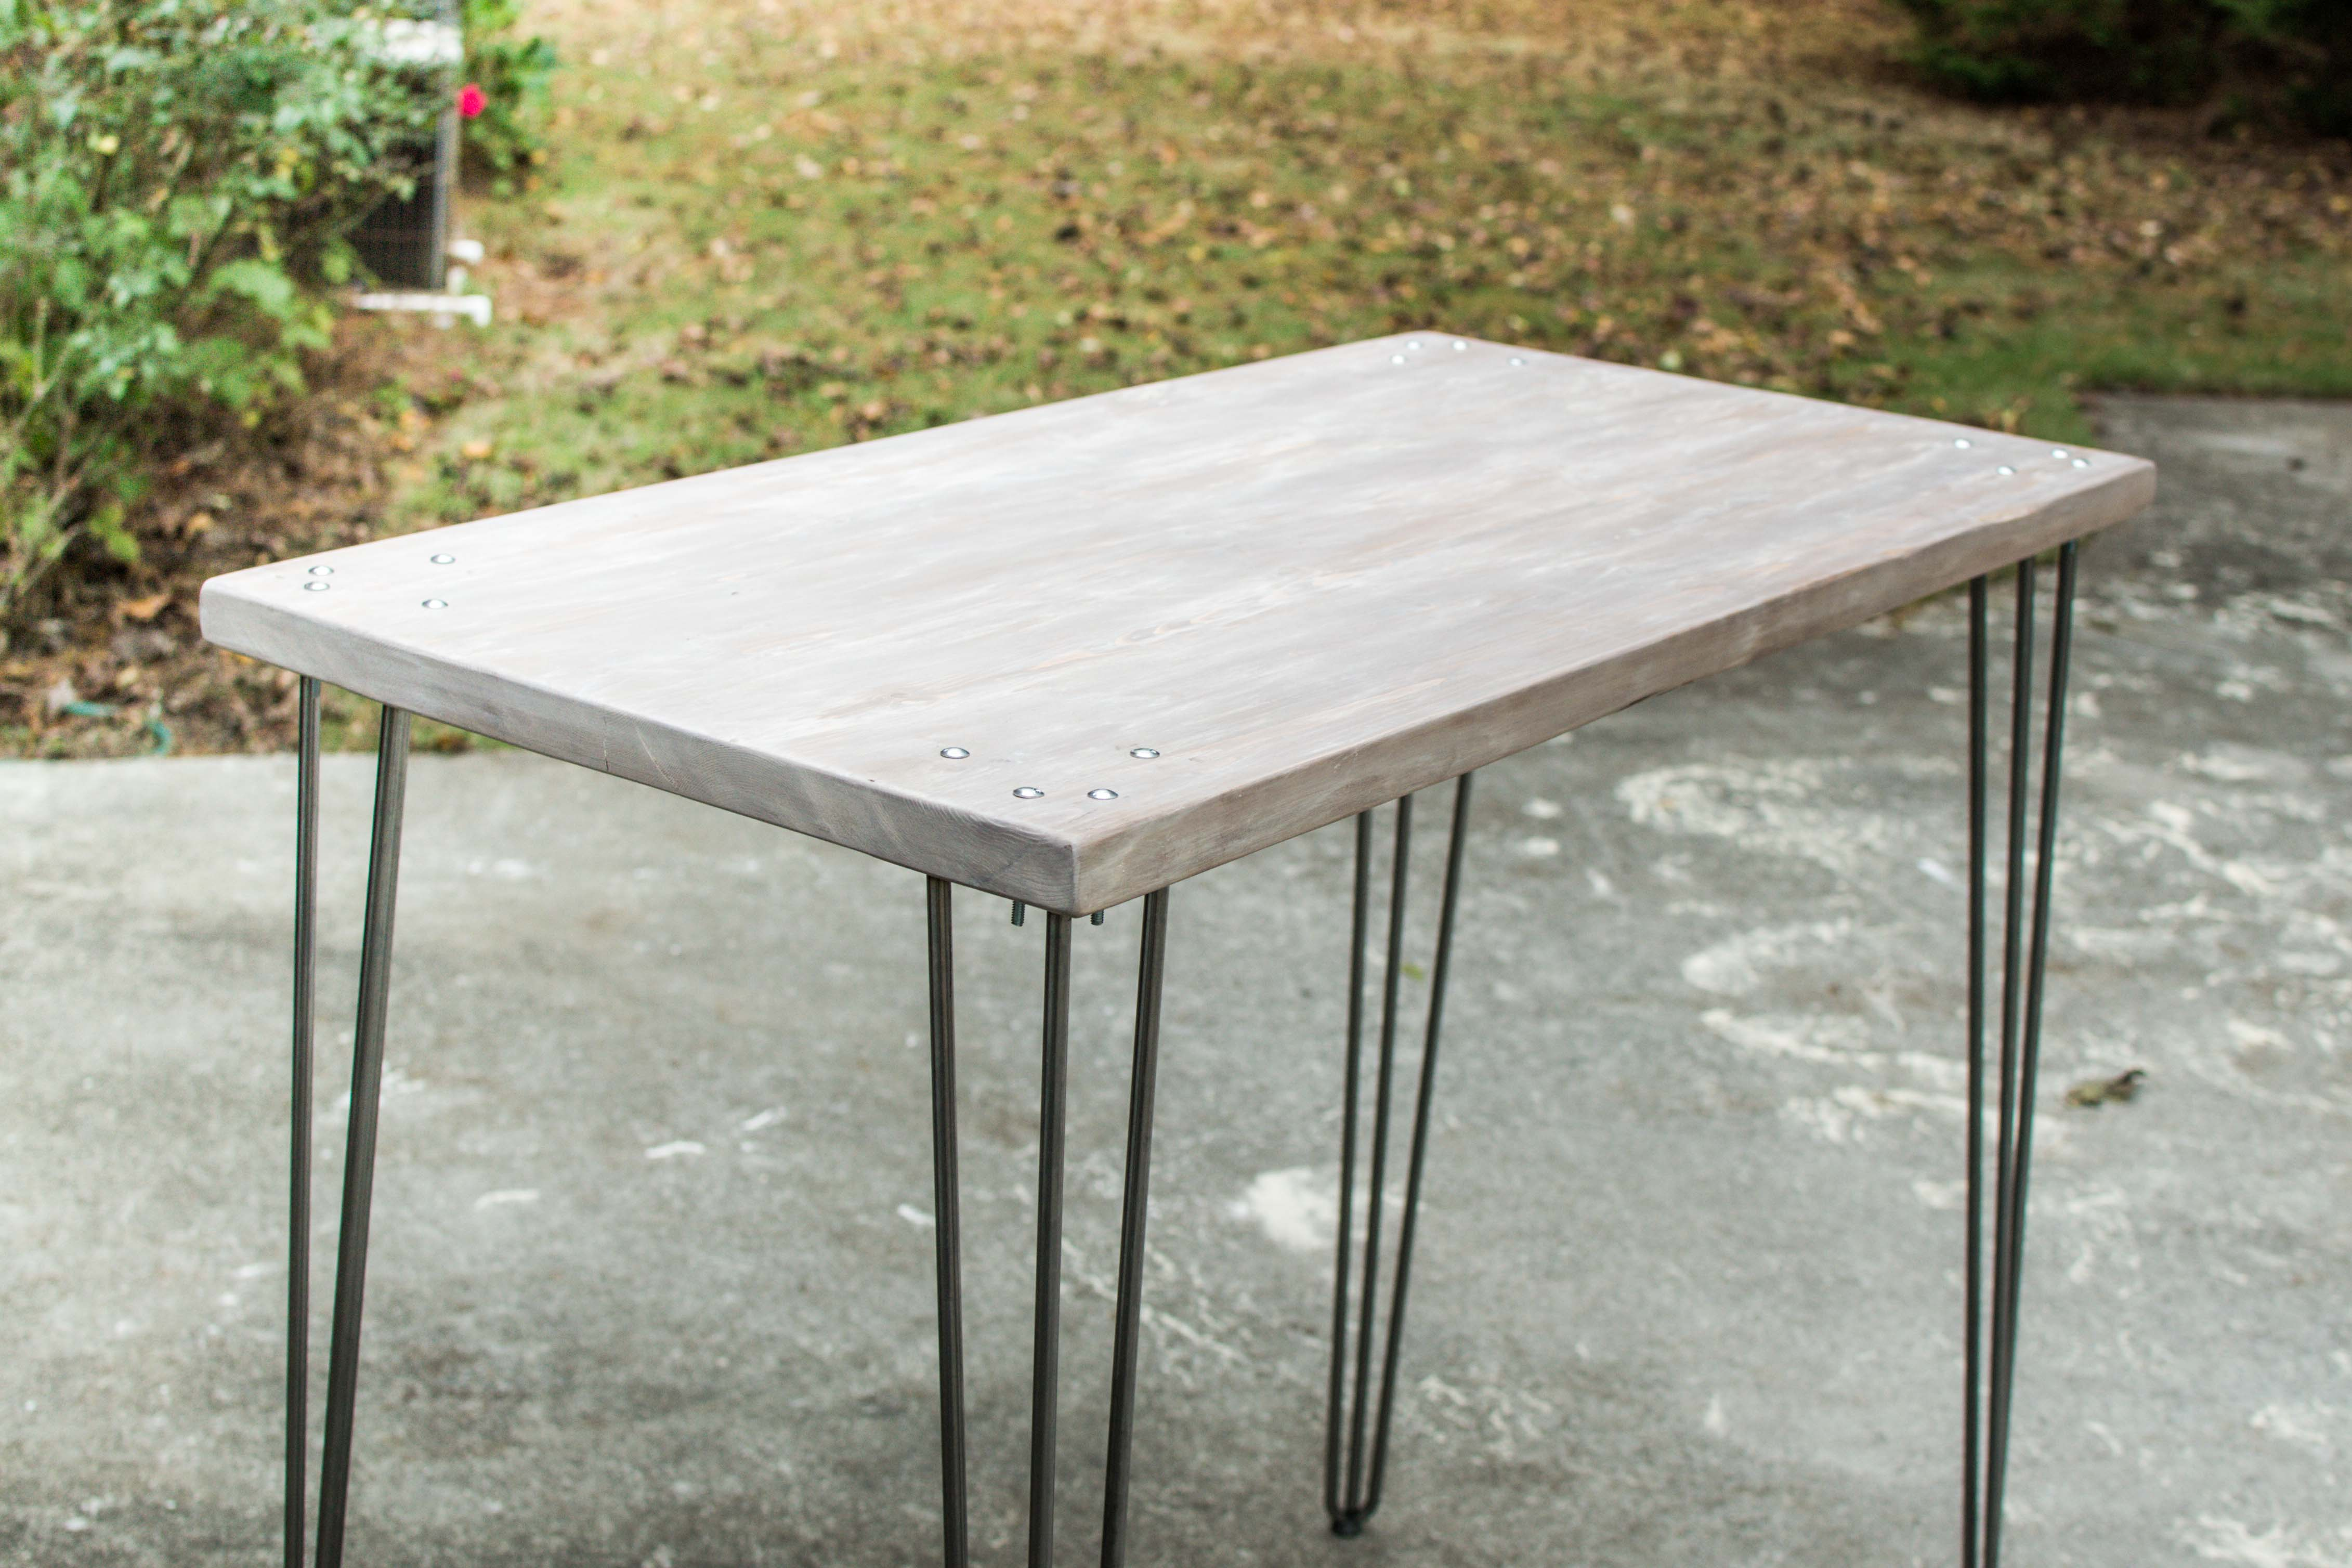 How to Make a Standing Desk With Wood Top & Metal Legs